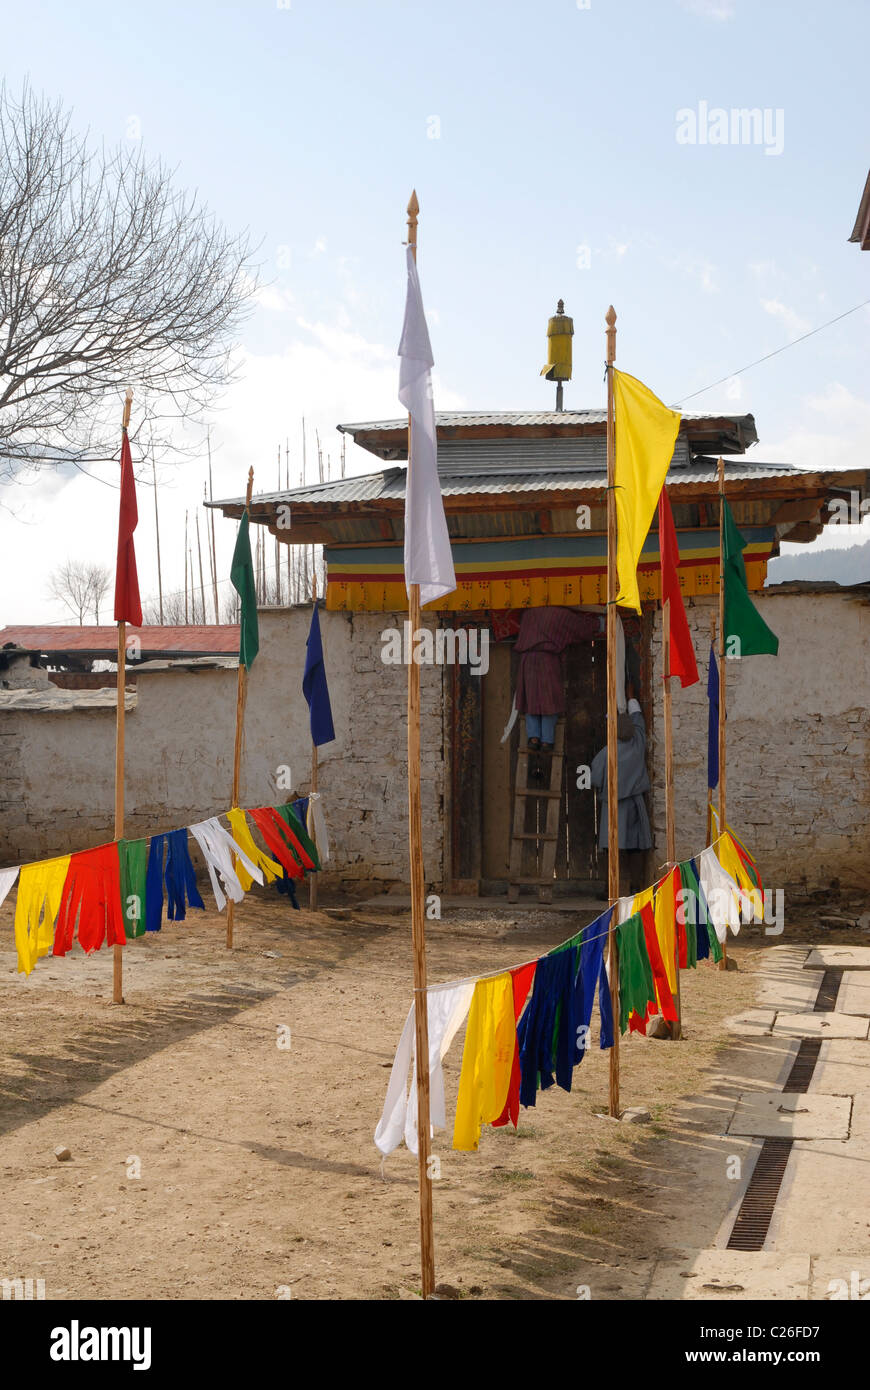 Entrance of the monastery in Ura, central Bhutan, being prepared for a special visitor - Stock Image